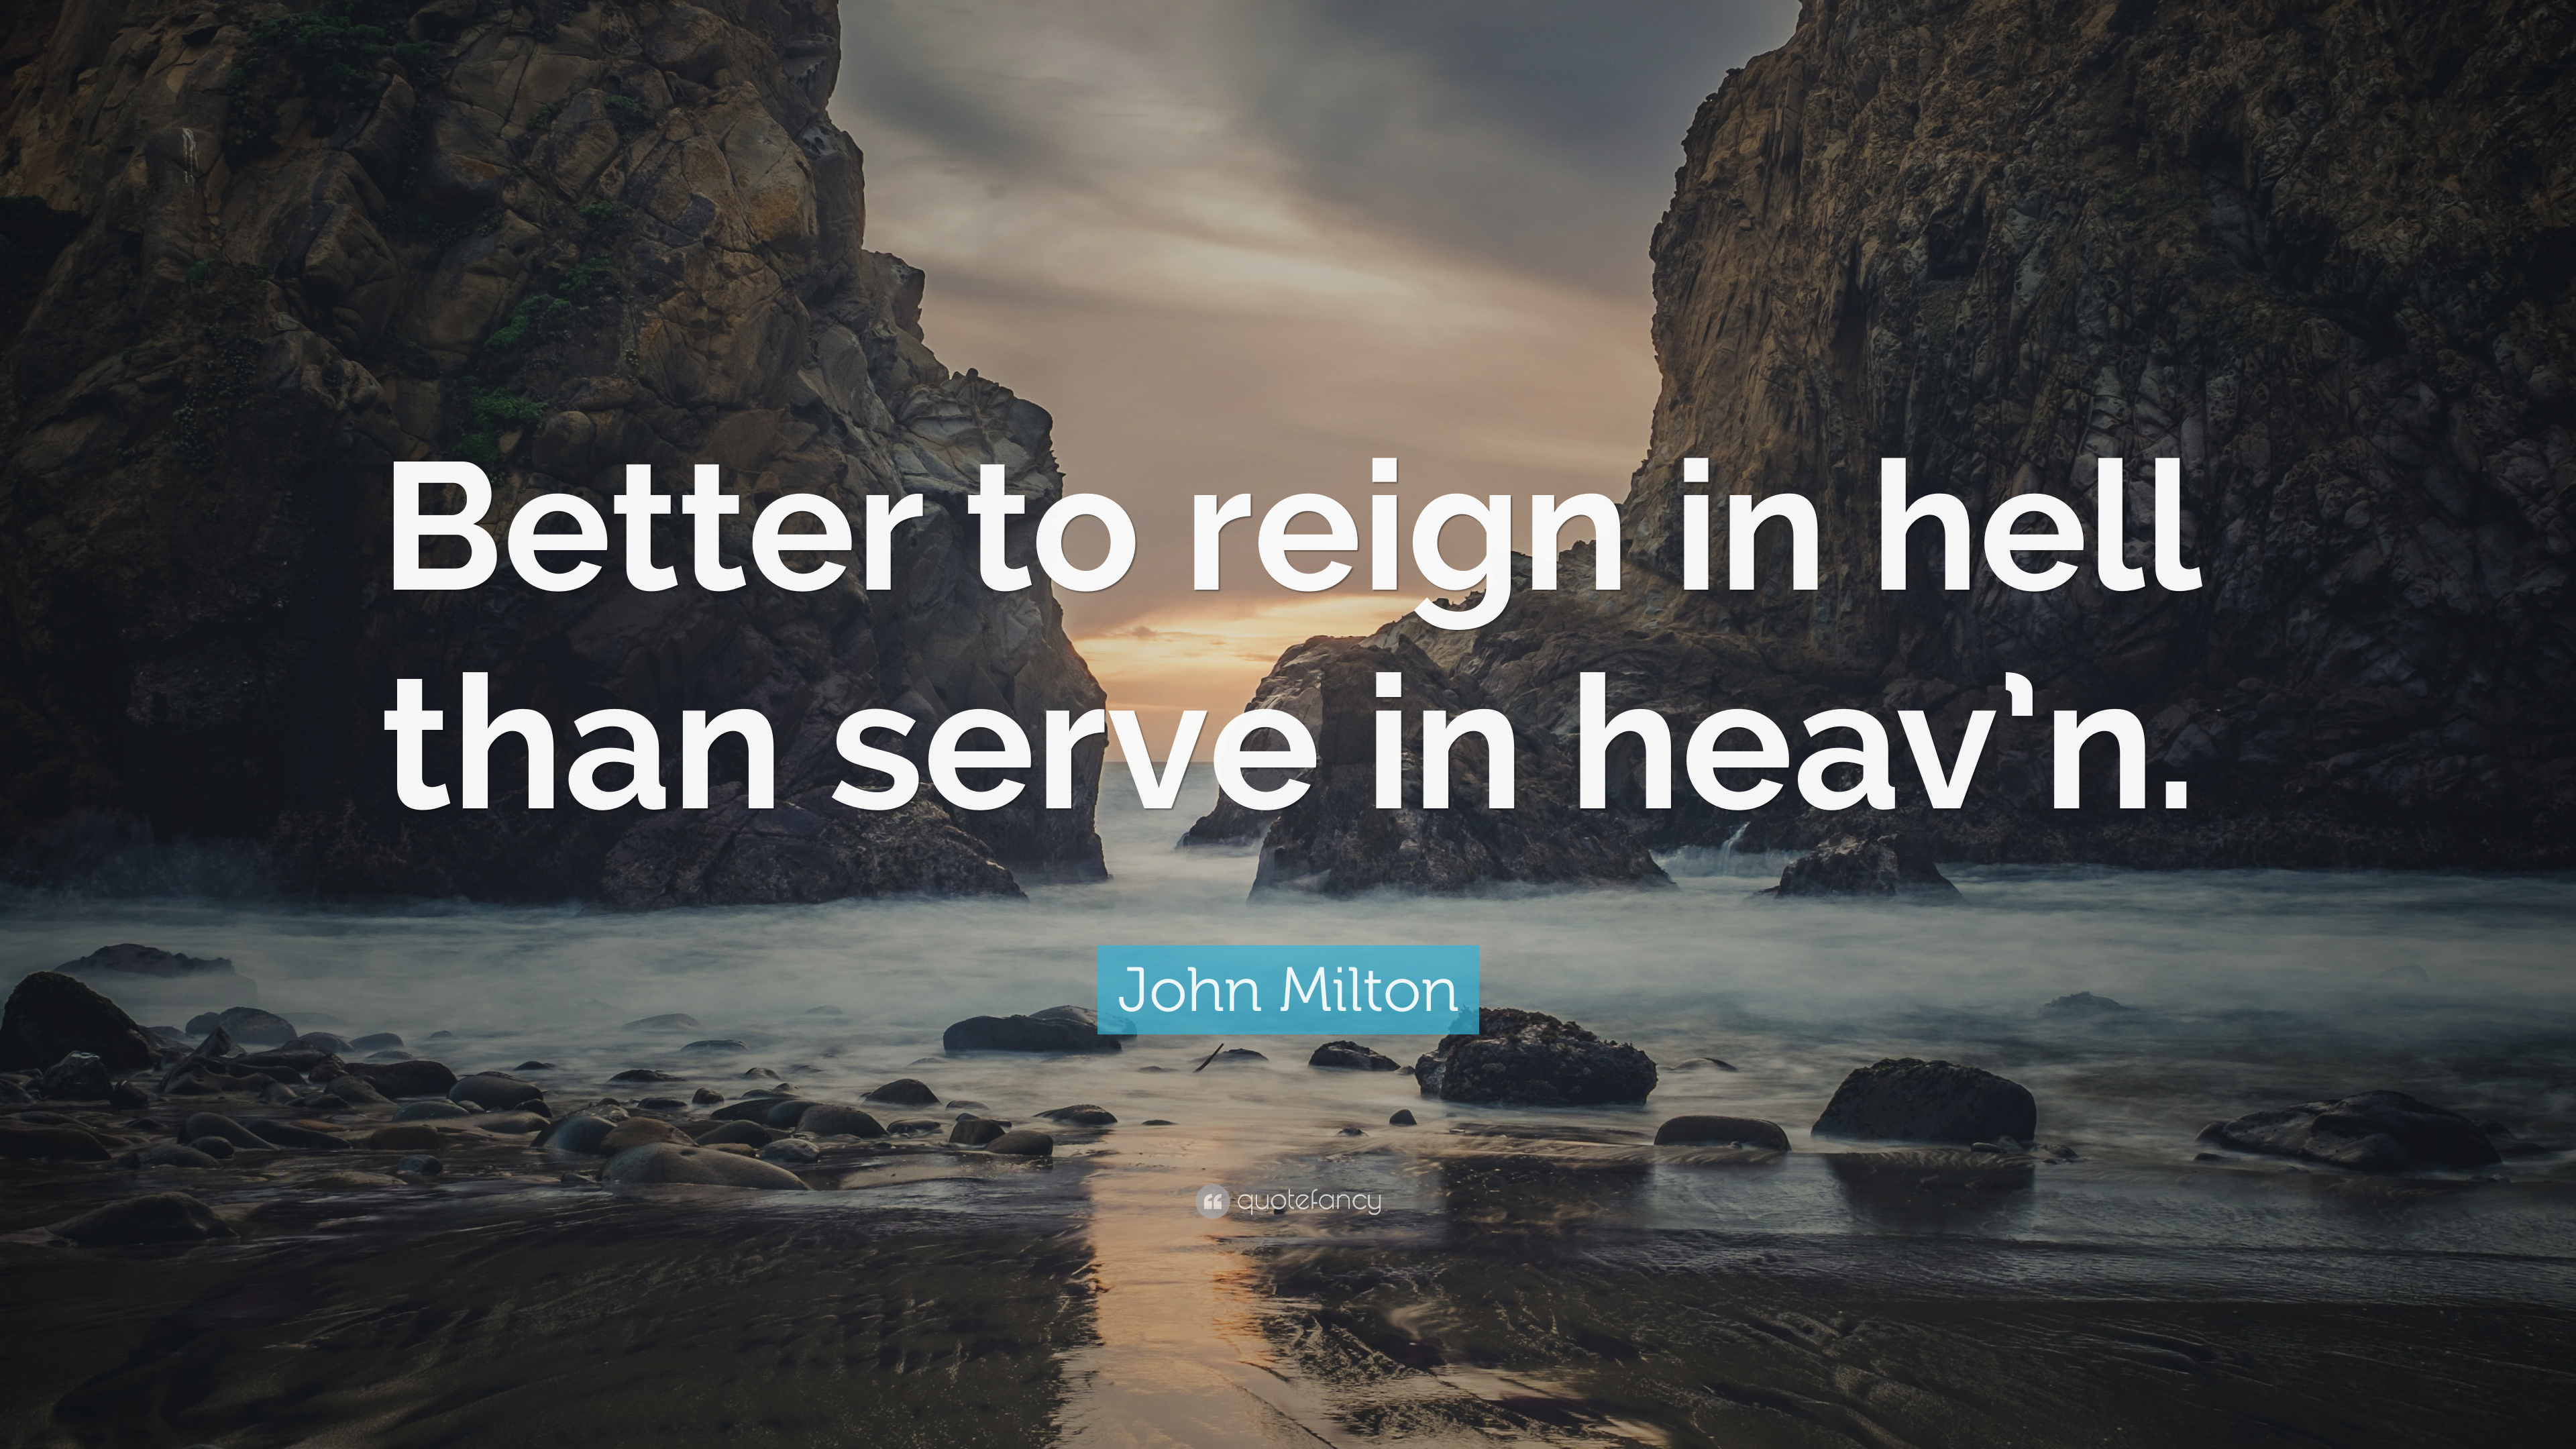 better to rule in hell than serve in heaven